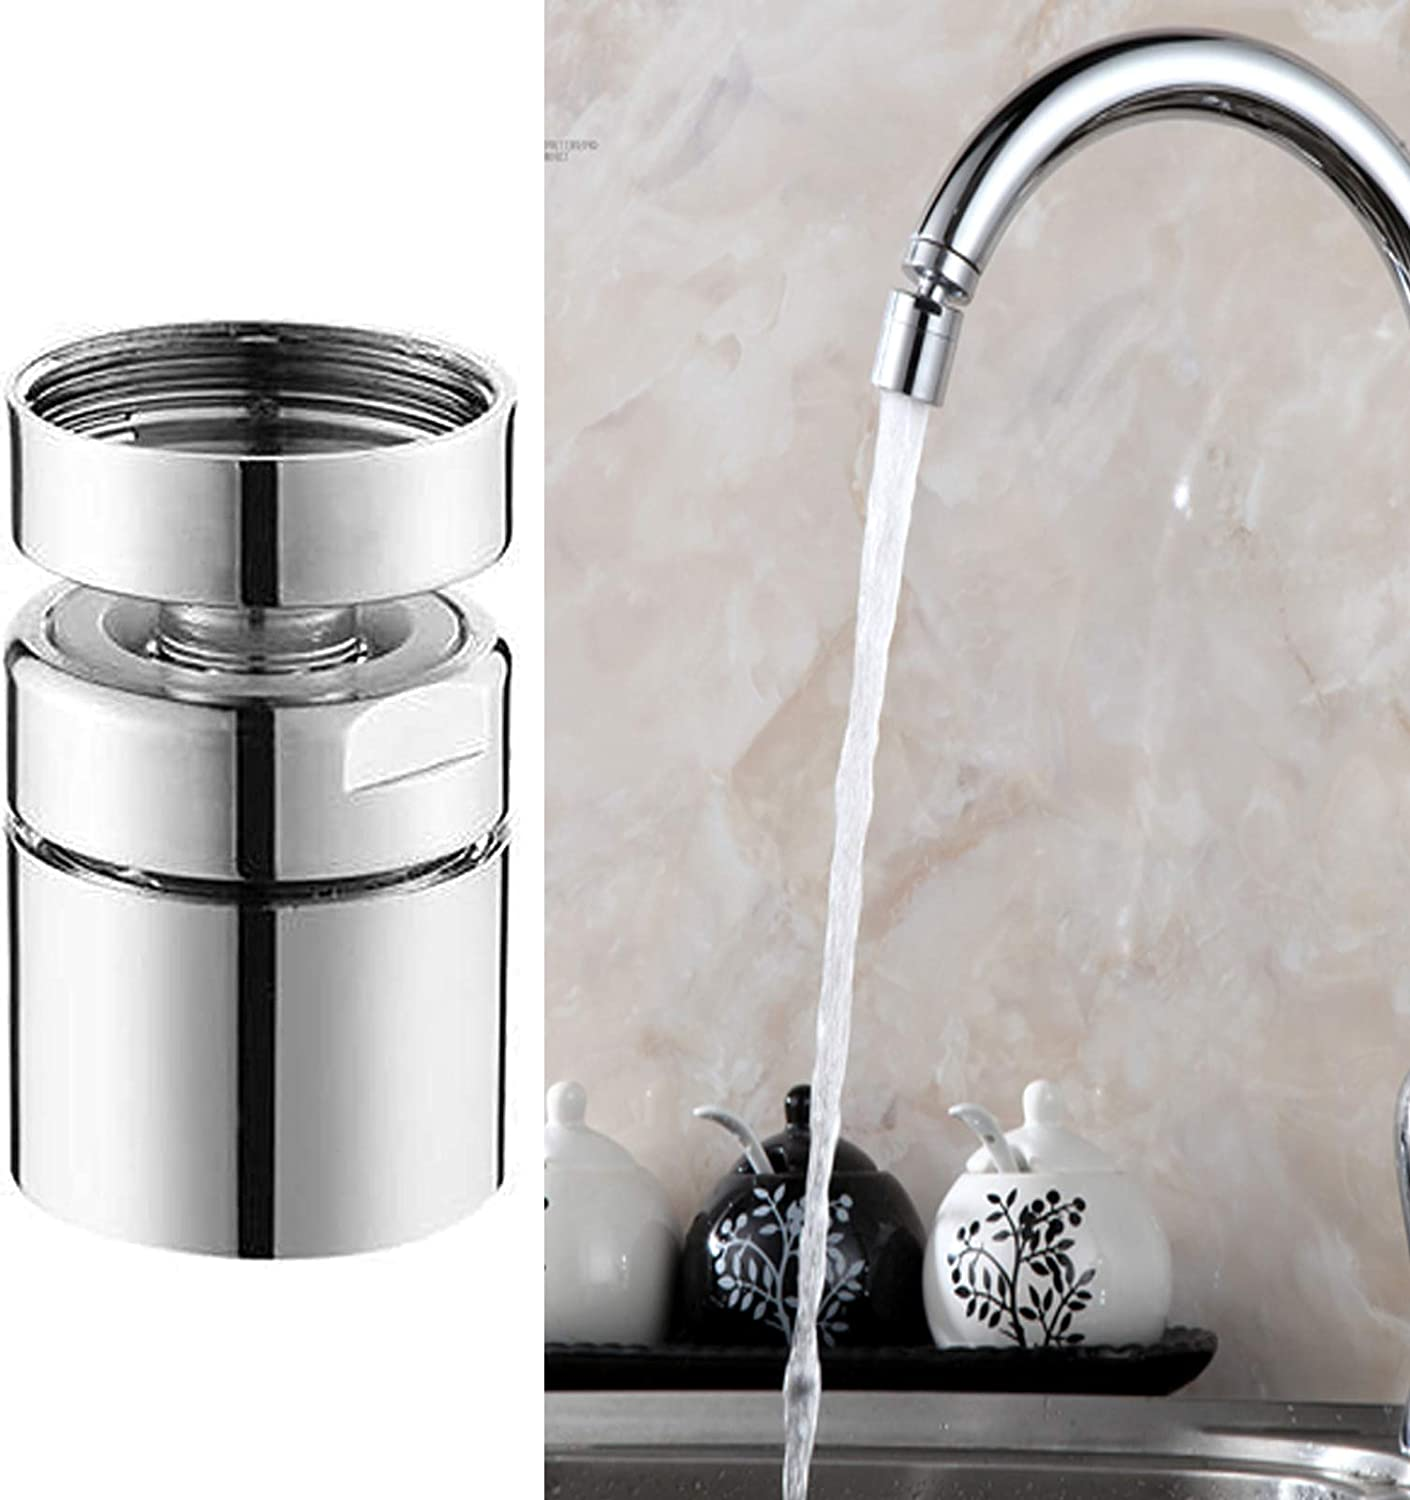 Hibbent Dual-function Kitchen Sink Faucet Aerators dual-function 360-Degree Swivel Big Angle Rotate Water Saving Tap Aerator Diffuser Faucet Sprayer Replacement-55//64 Inch-27UNS Female Thread-Chrome